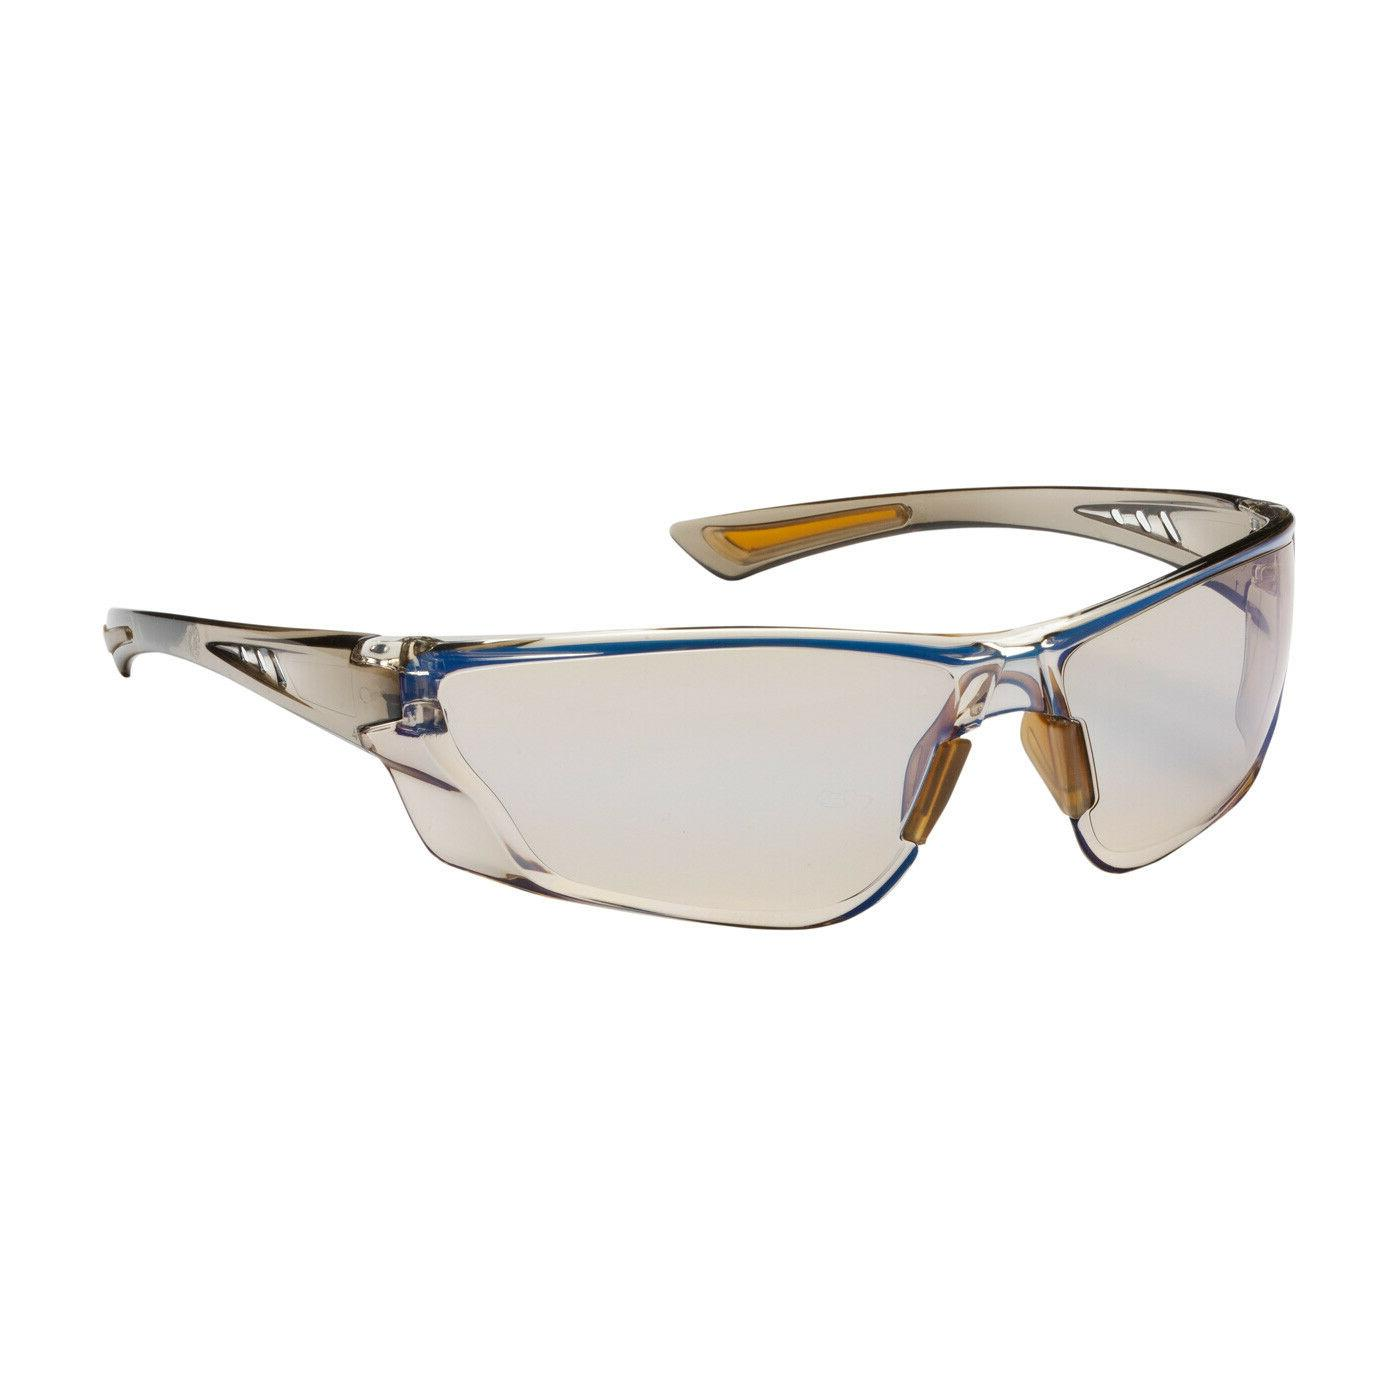 recon safety glasses brown temple indoor outdoor